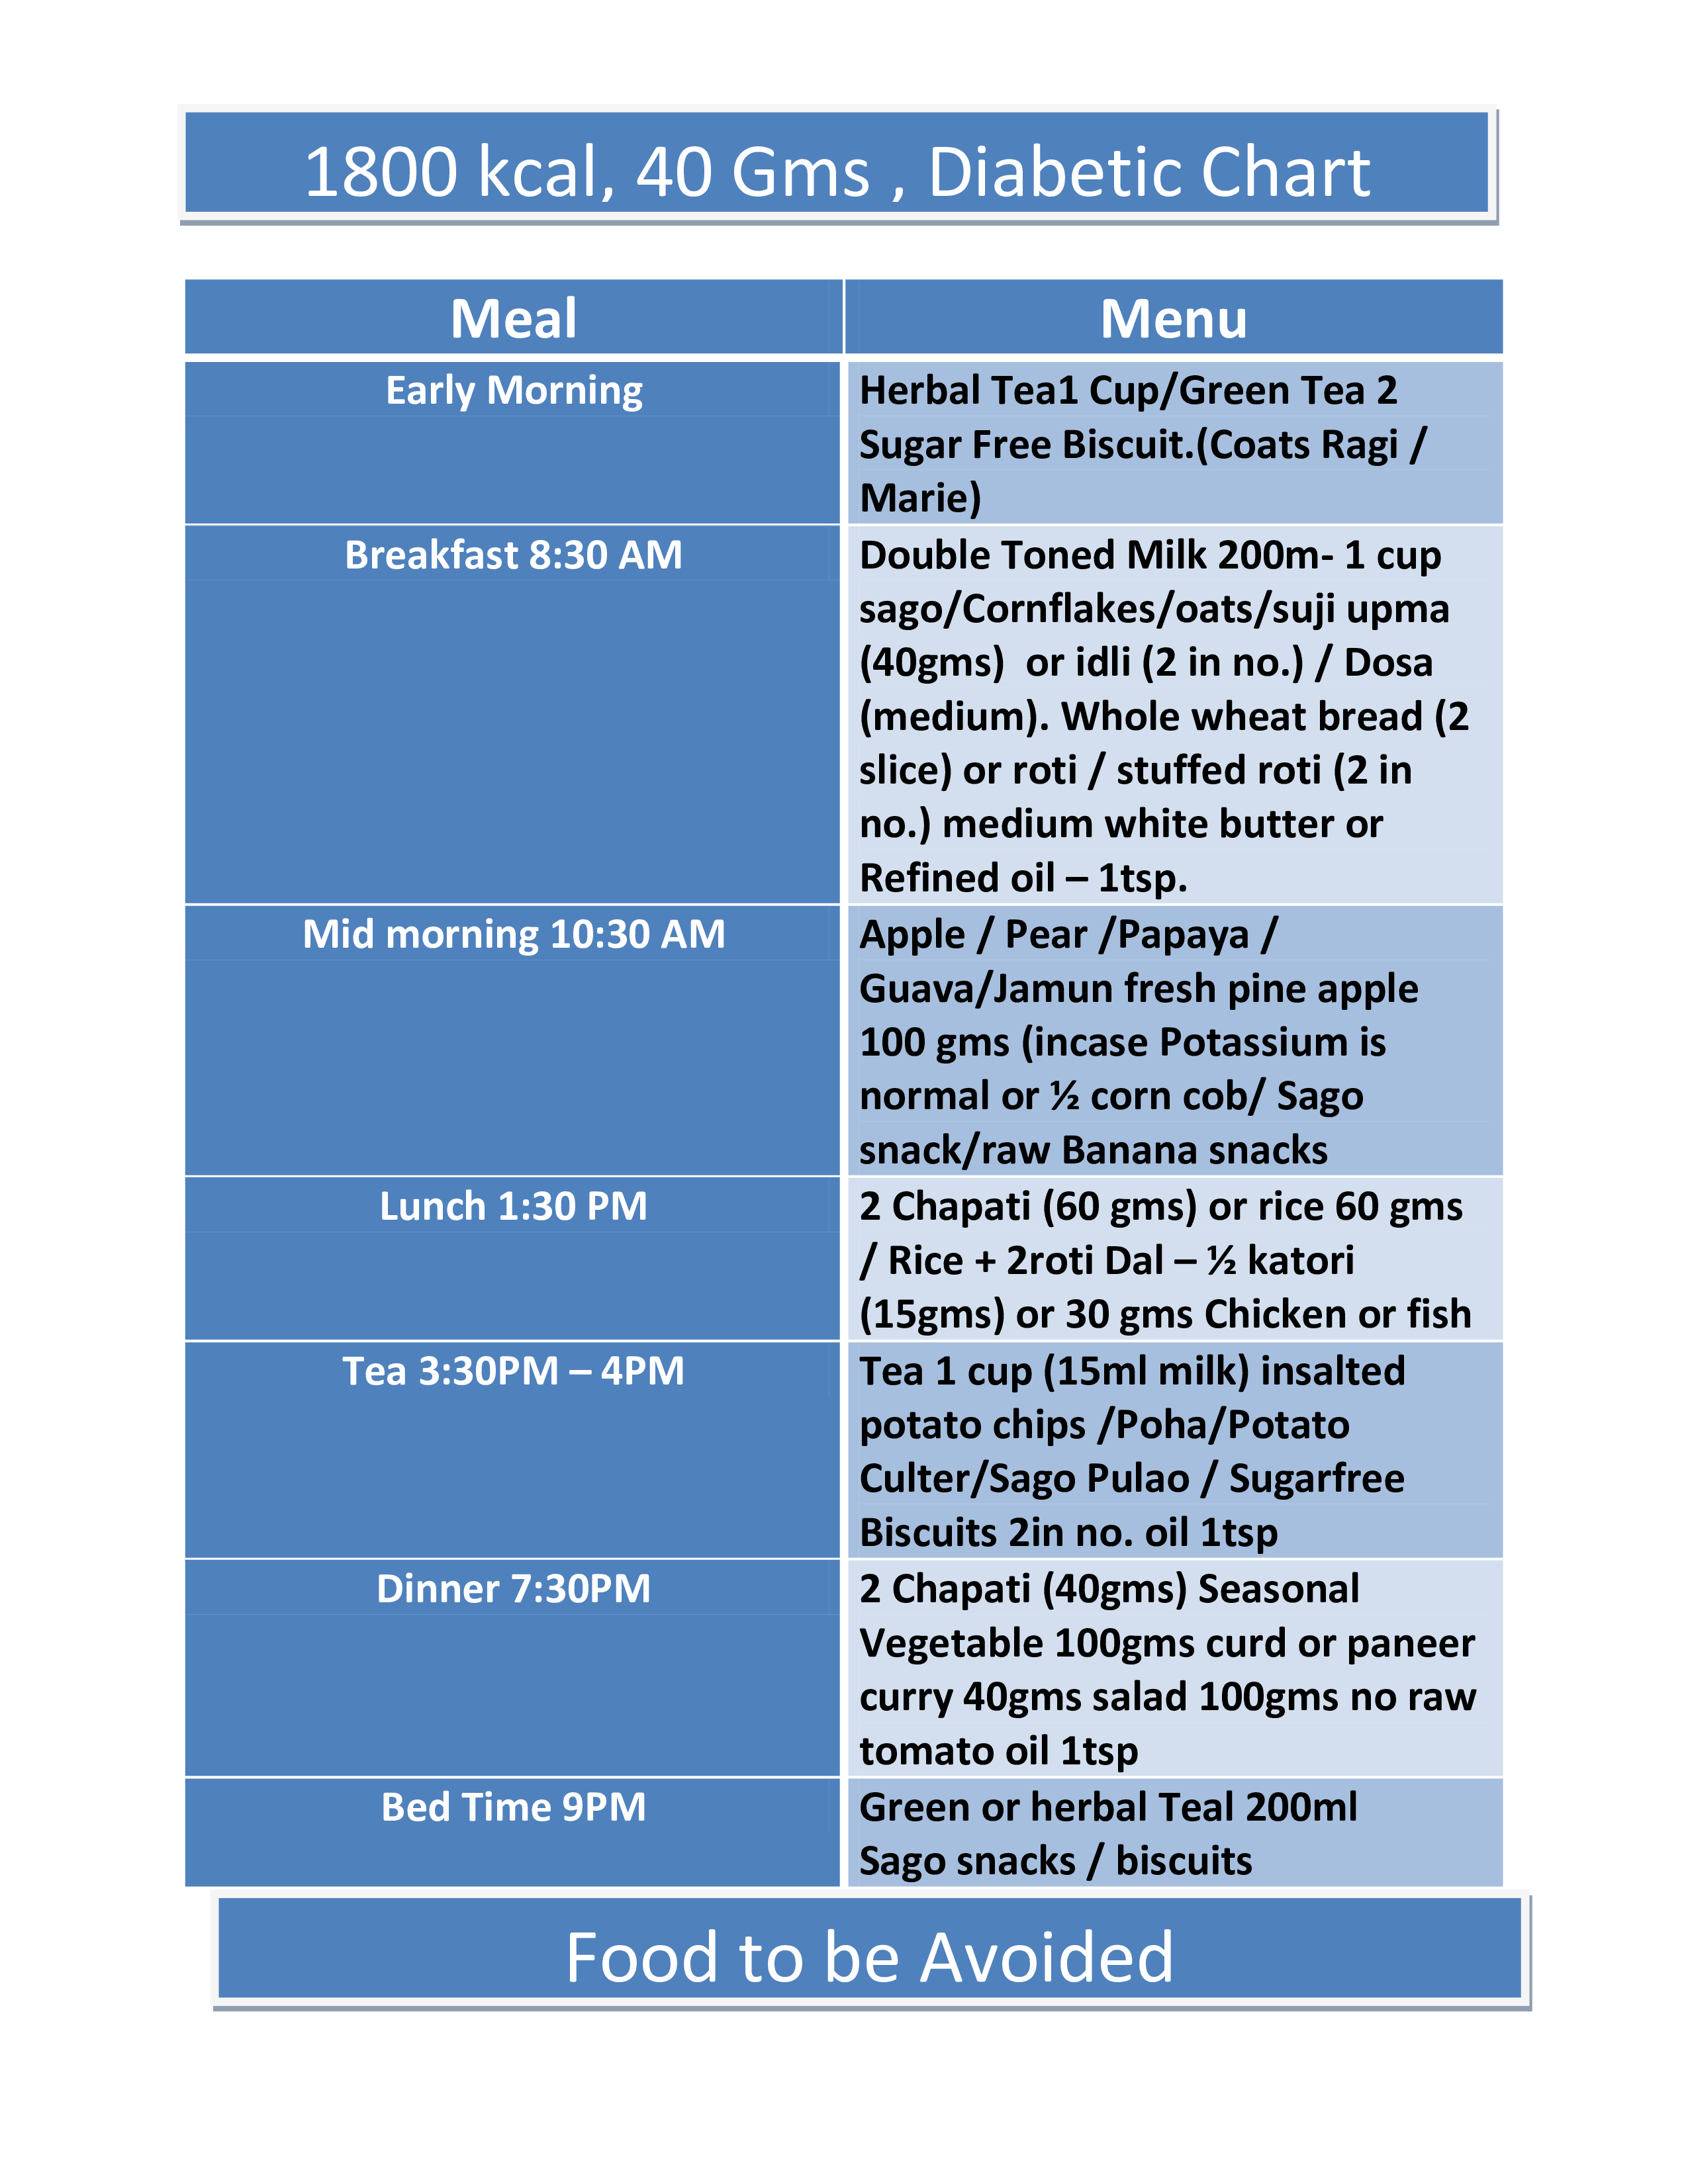 Diabetic Food Chart How To Create A Diabetic Food Chart Download This Diabetic Food Chart Template Now Diabetic Food Chart Food Charts Diabetic Recipes